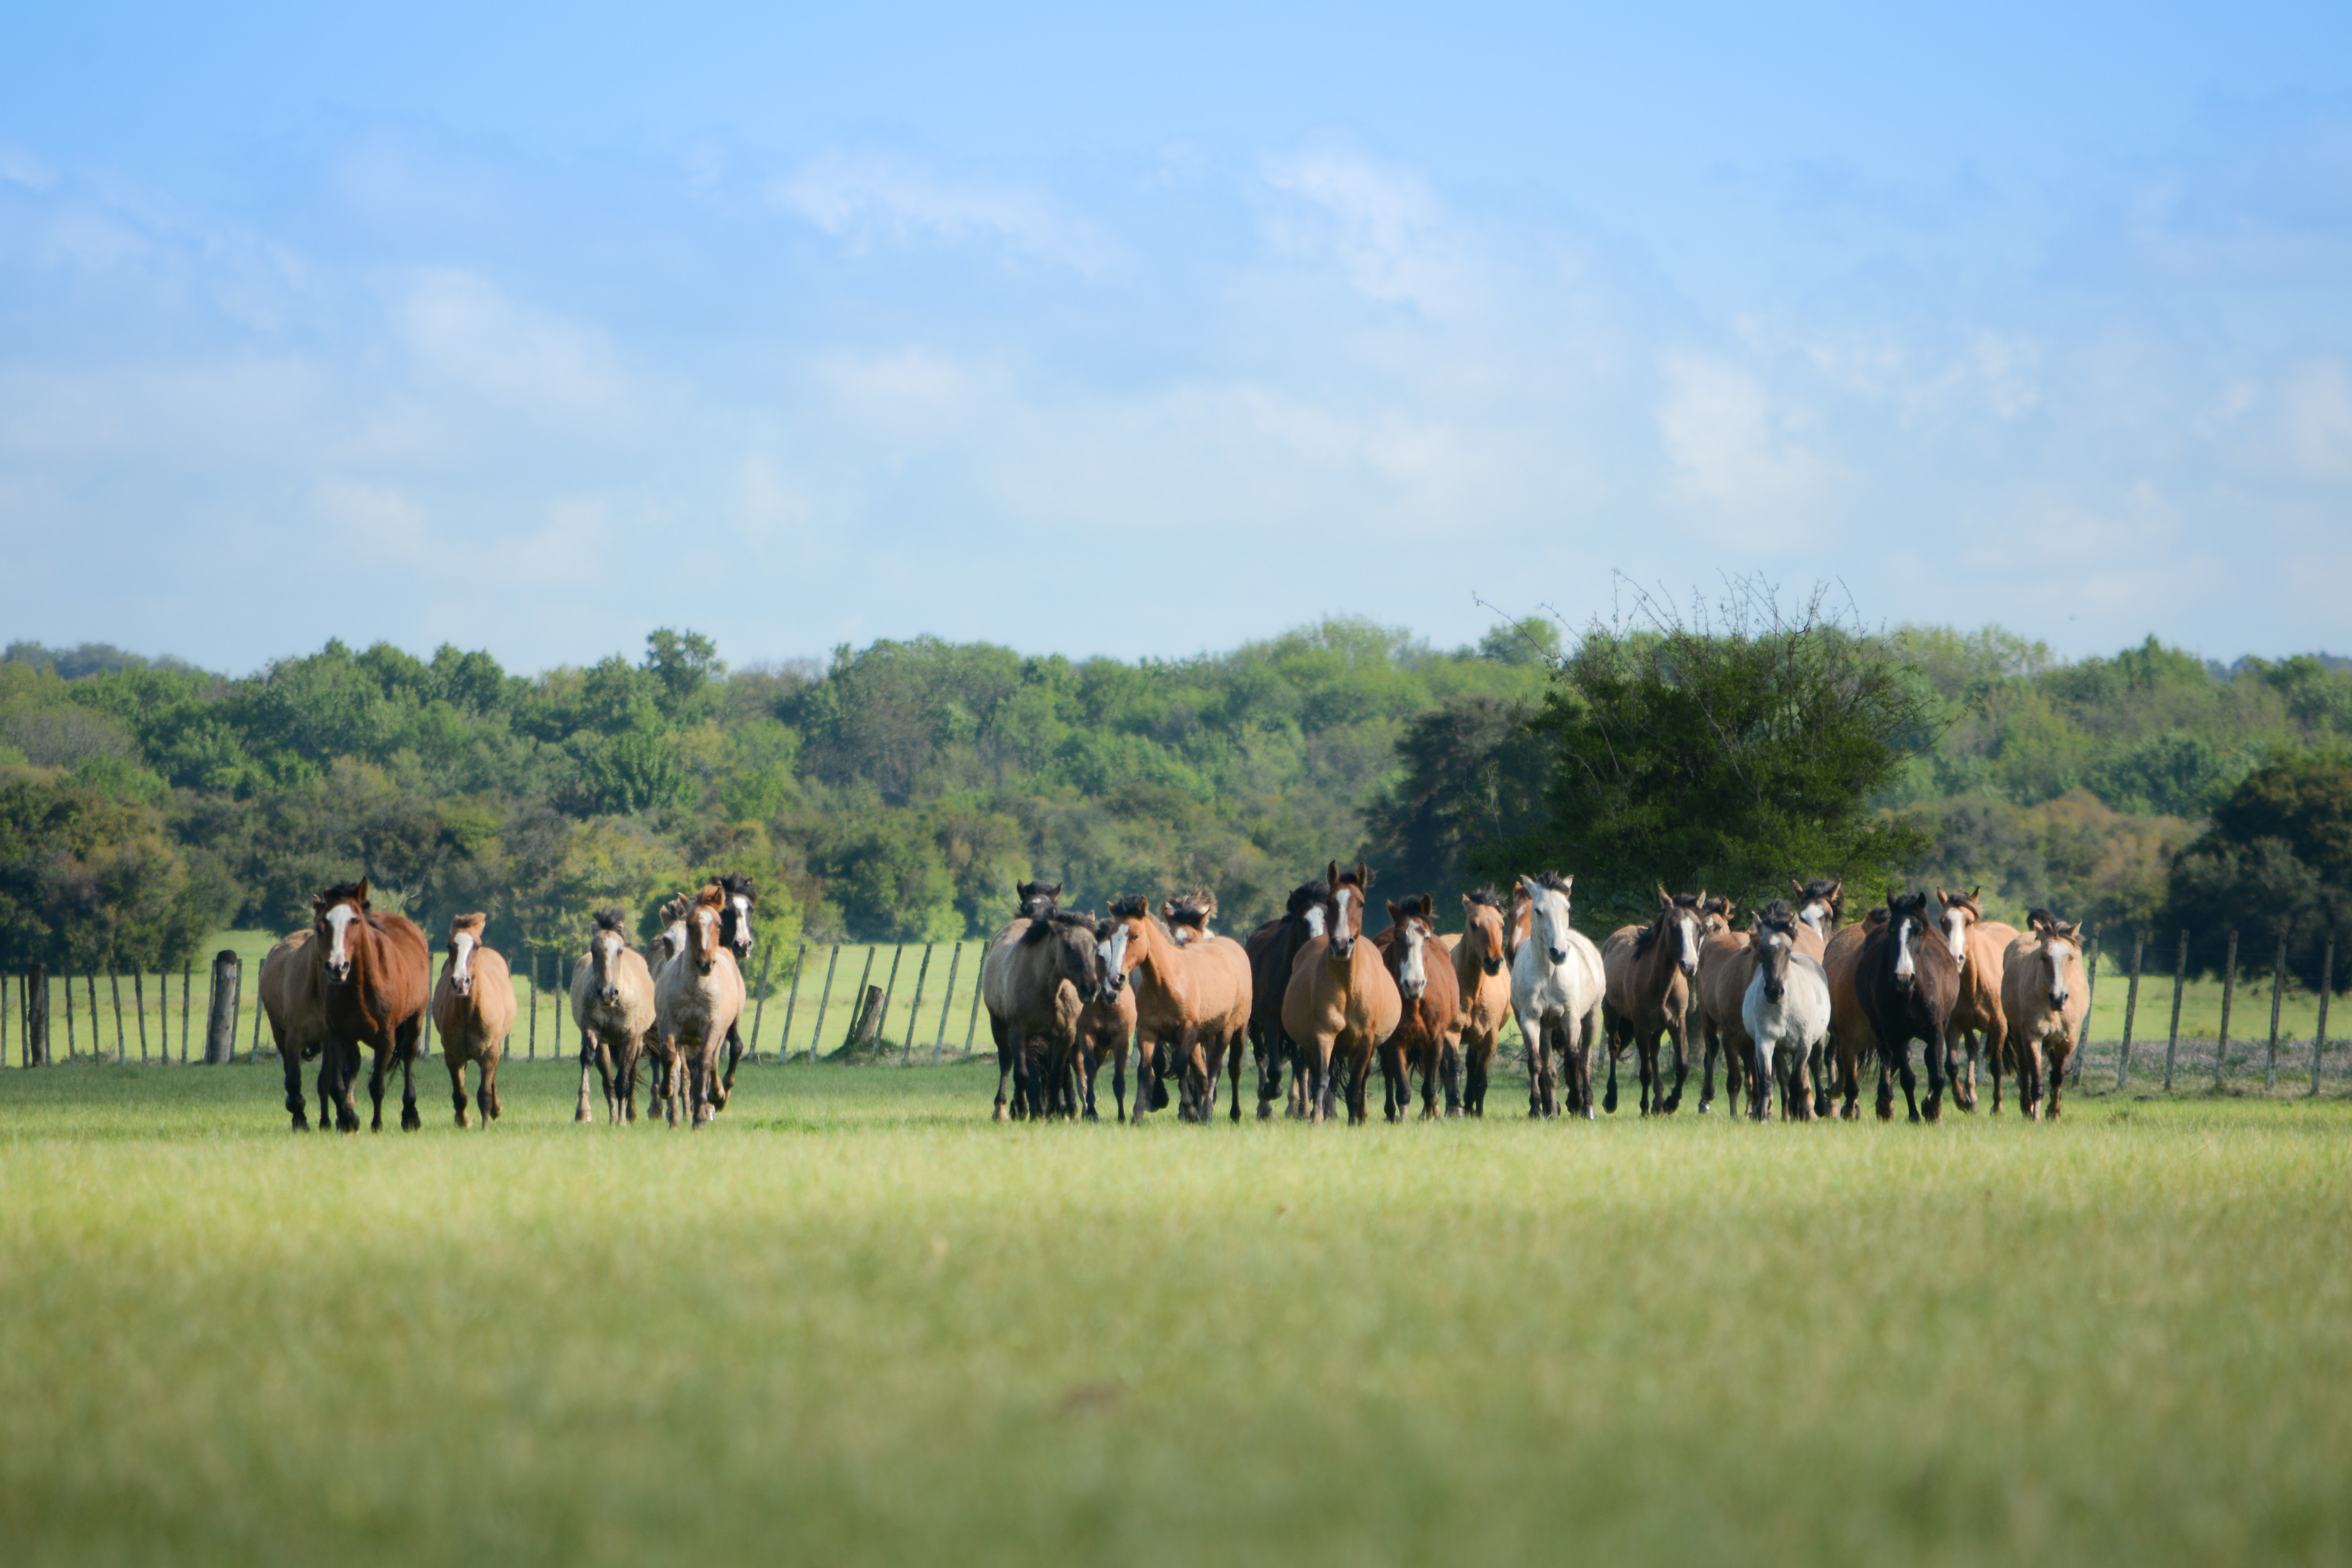 horses standing on grass field at daytime